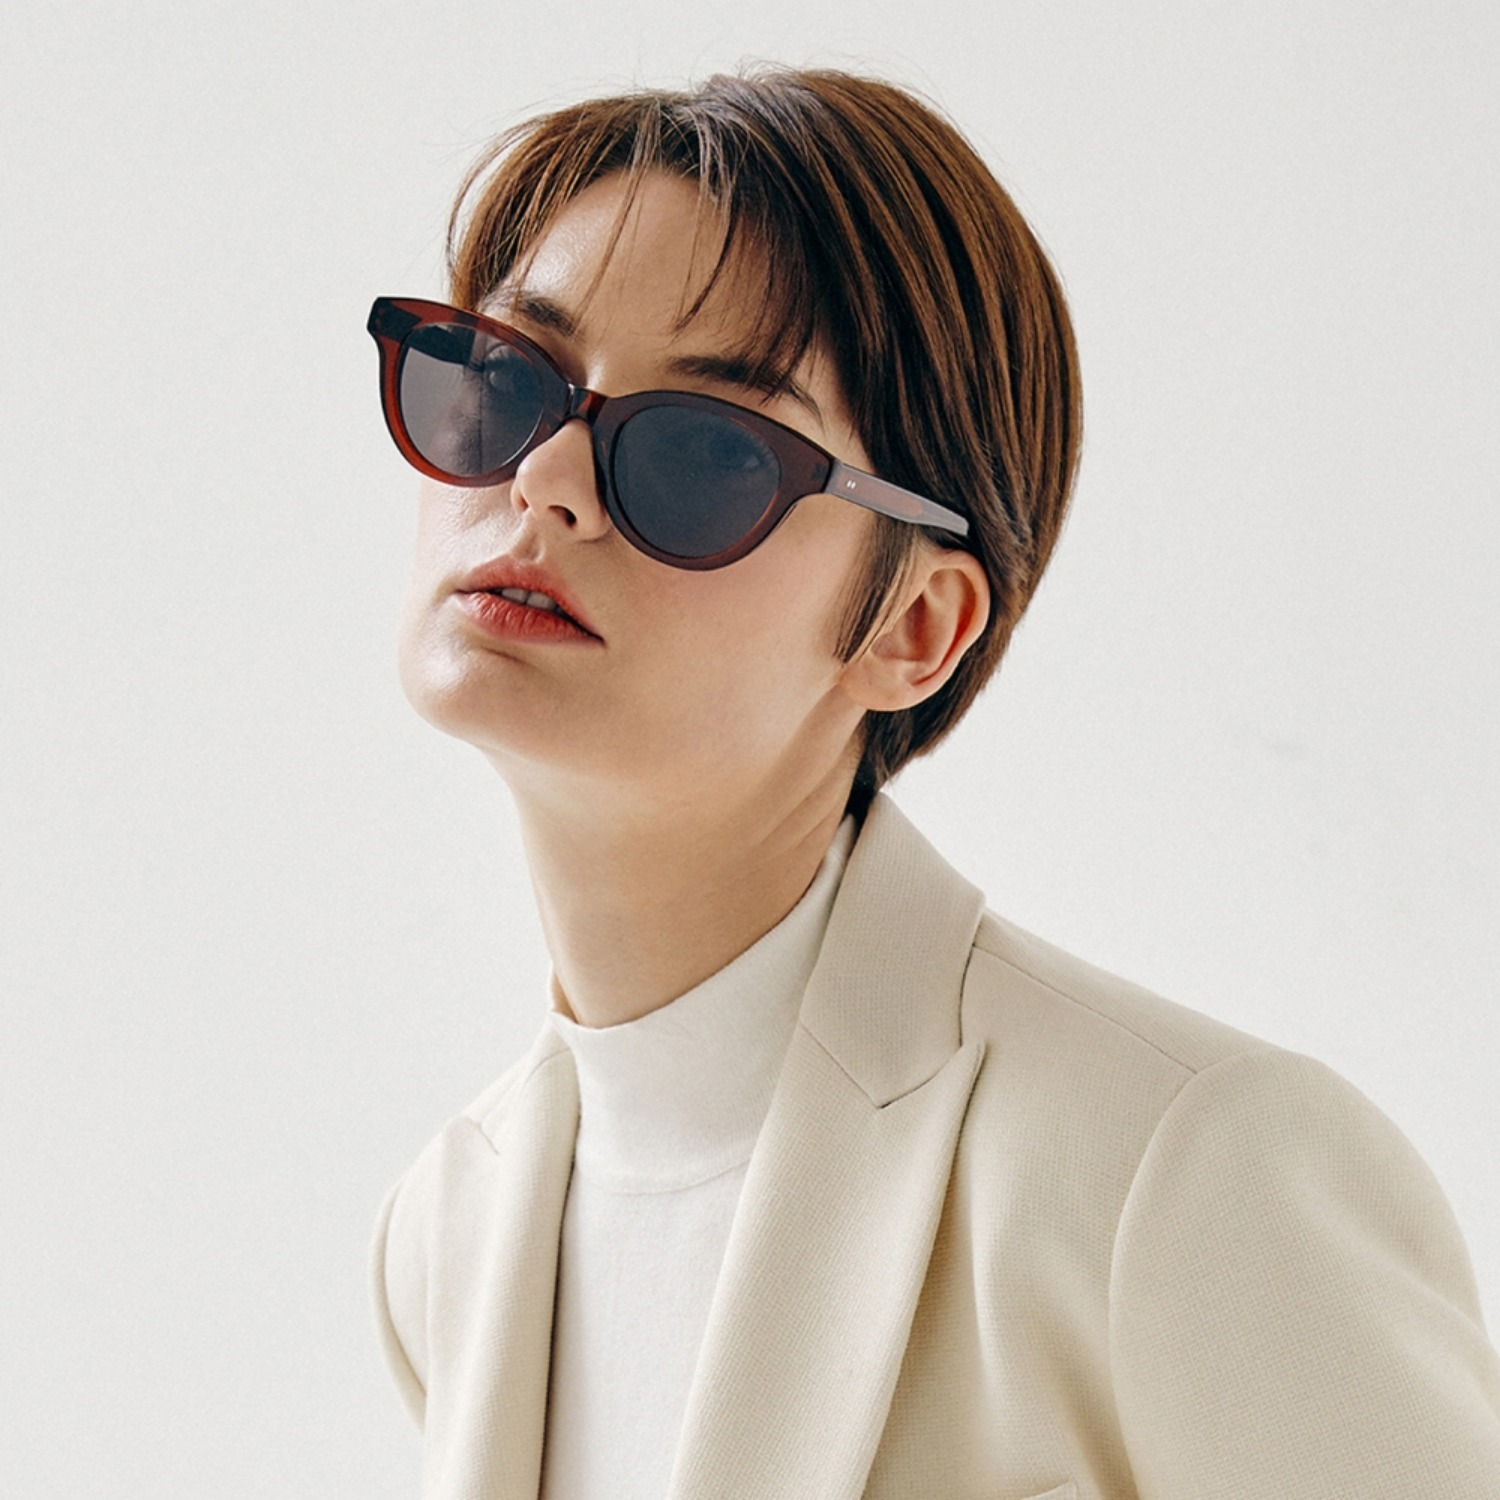 진저아이웨어 안경 Easy 82% Van dyck GINGER EYEWEAR